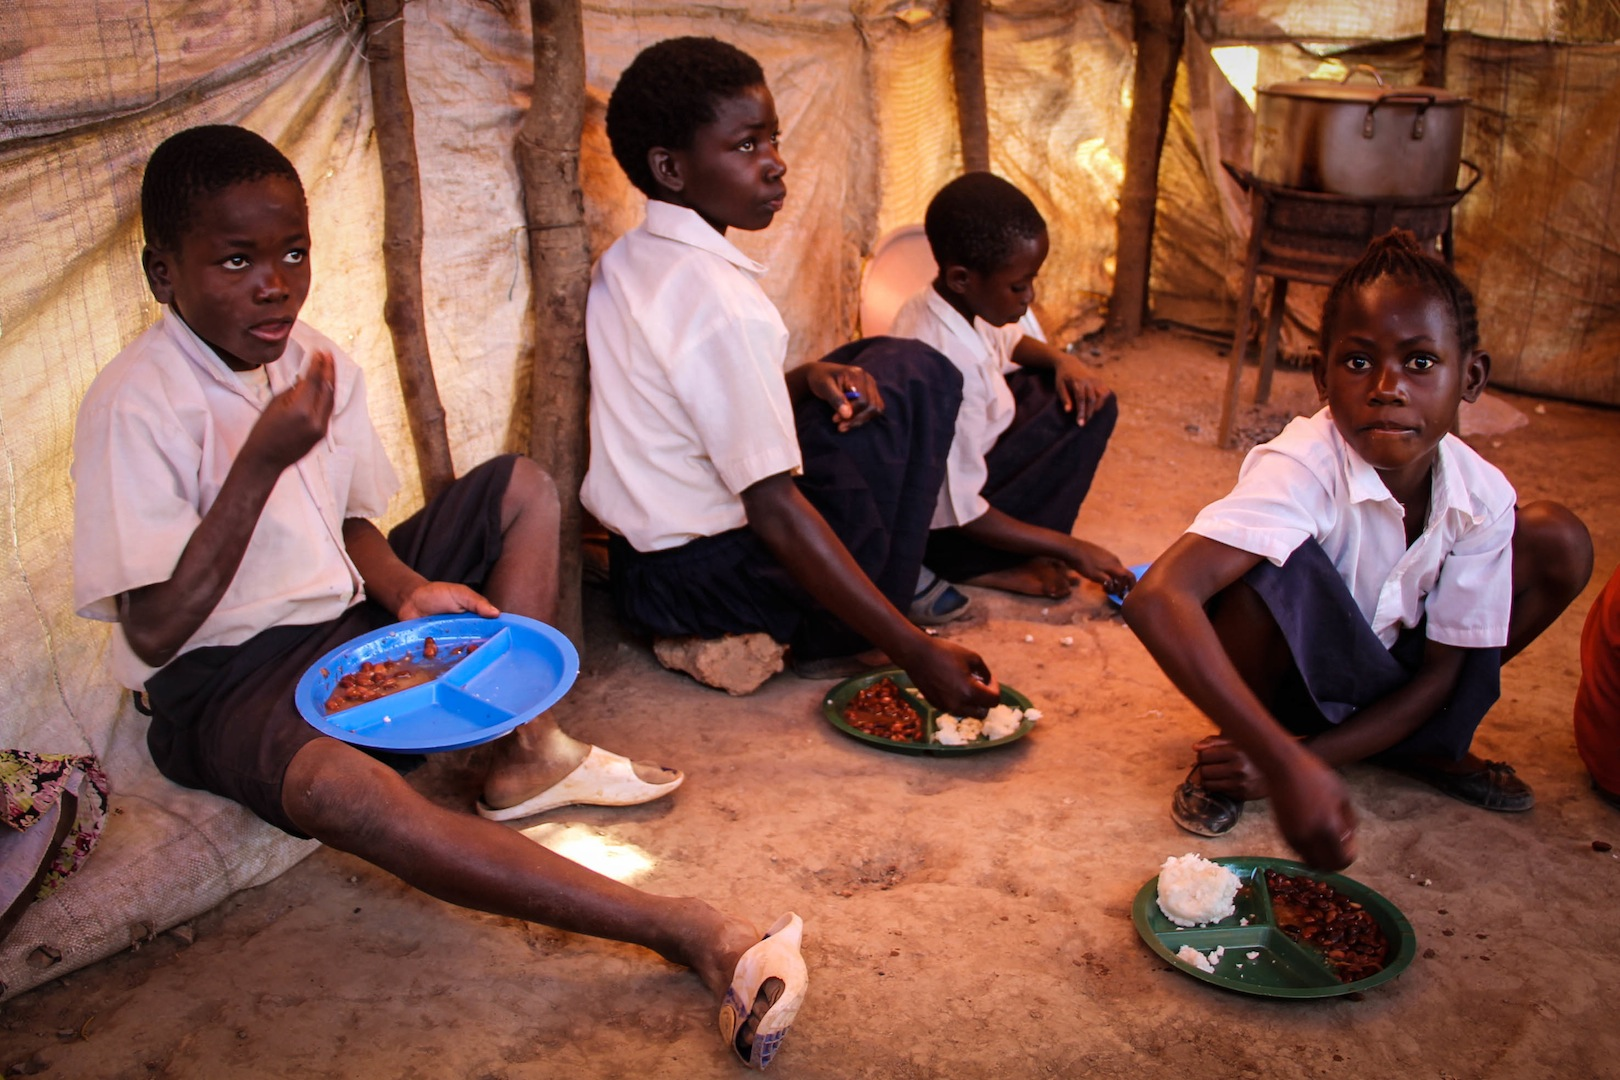 Children receive their daily nutritious meal cooked by volunteer Care Workers